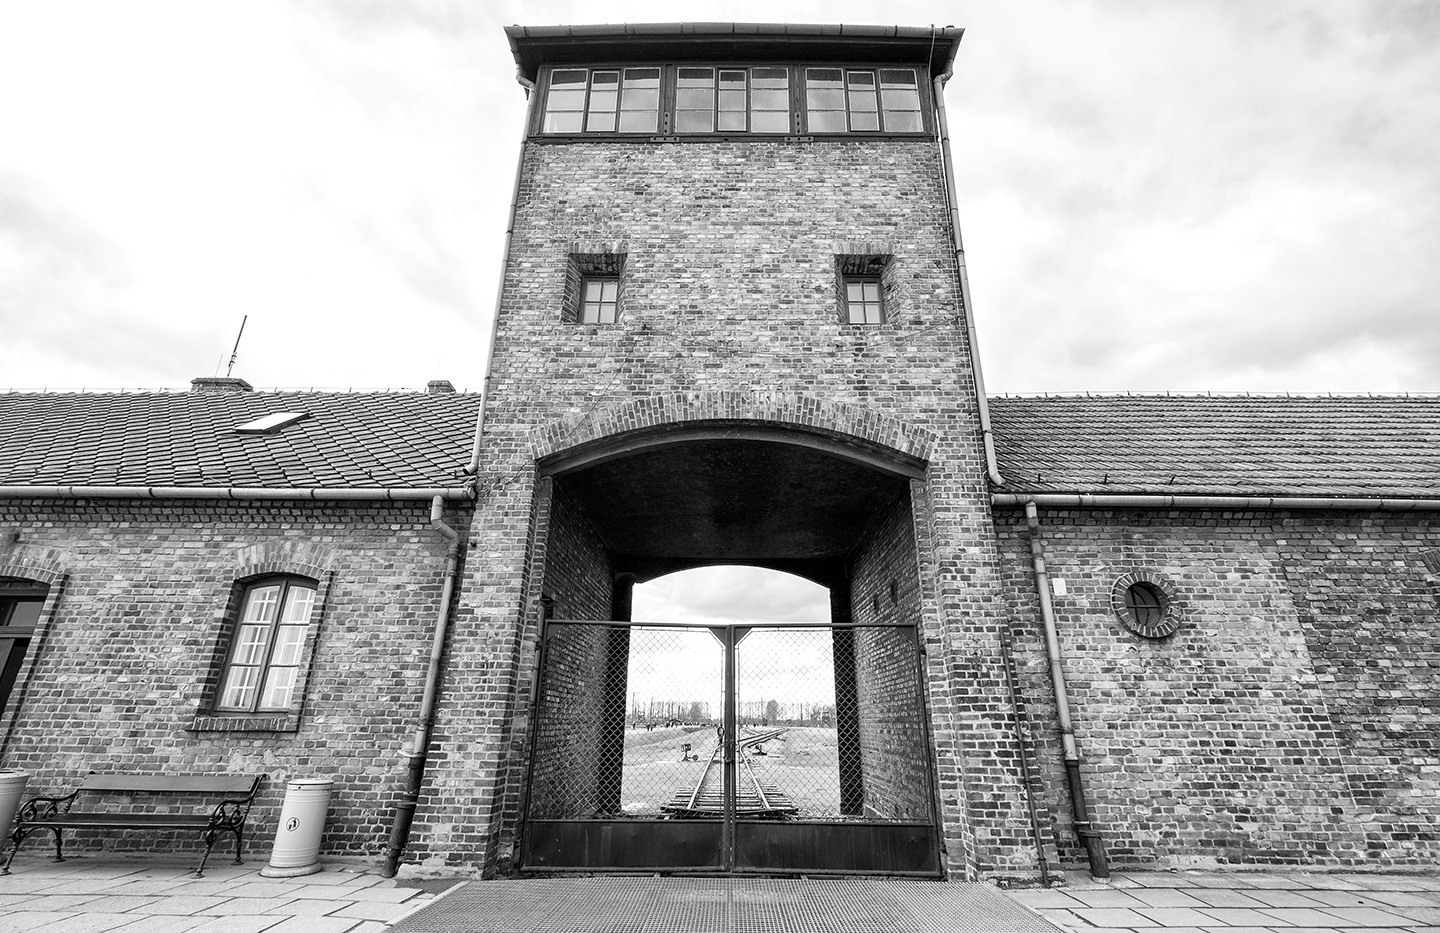 Entrance to Birkenau at Auschwitz-Birkenau, Poland